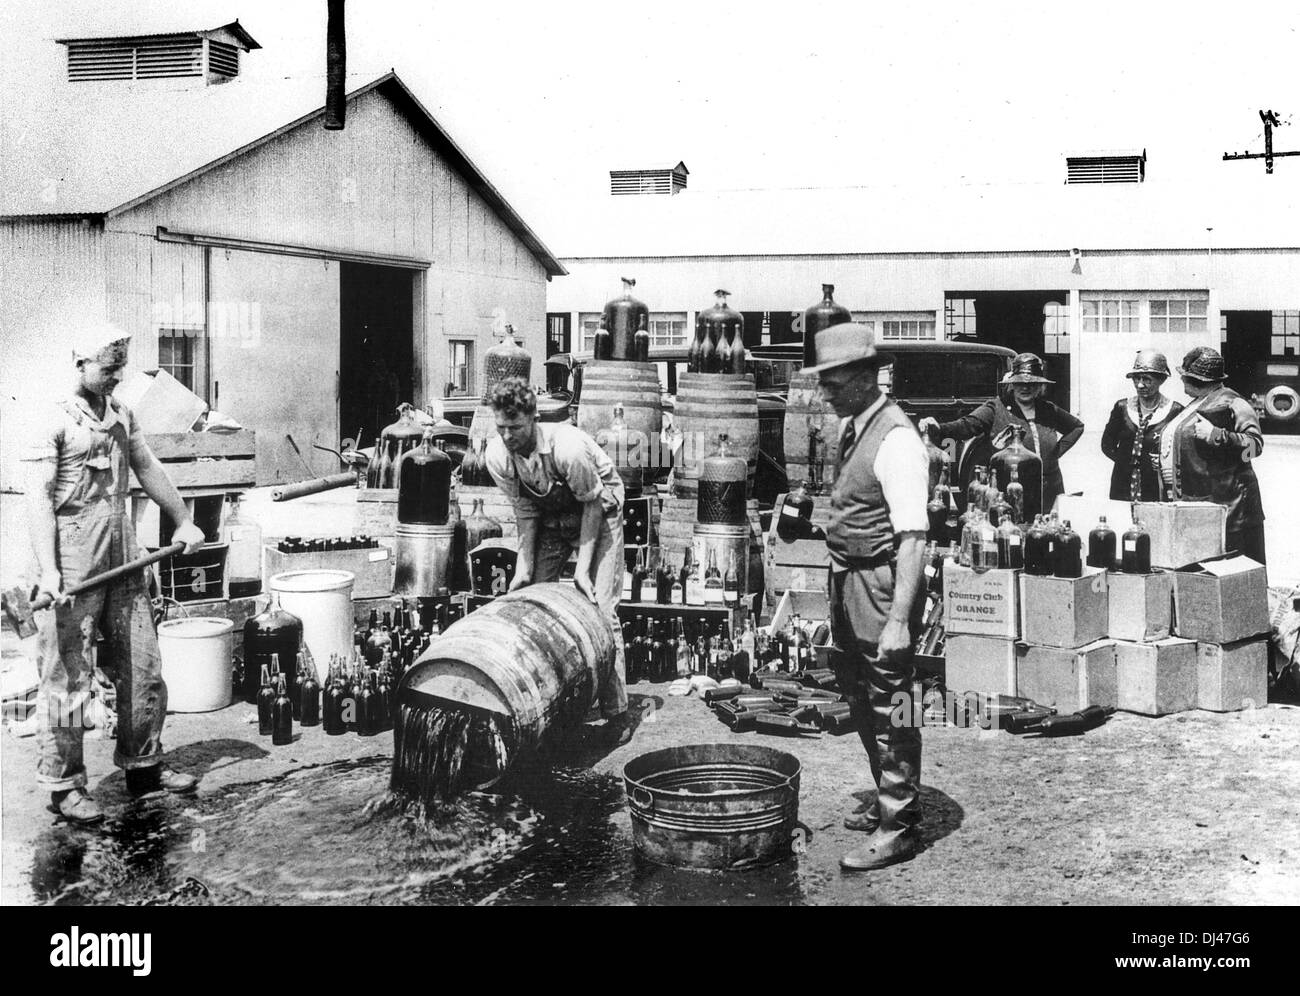 Destruction of alcohol during prohibition, America - Stock Image